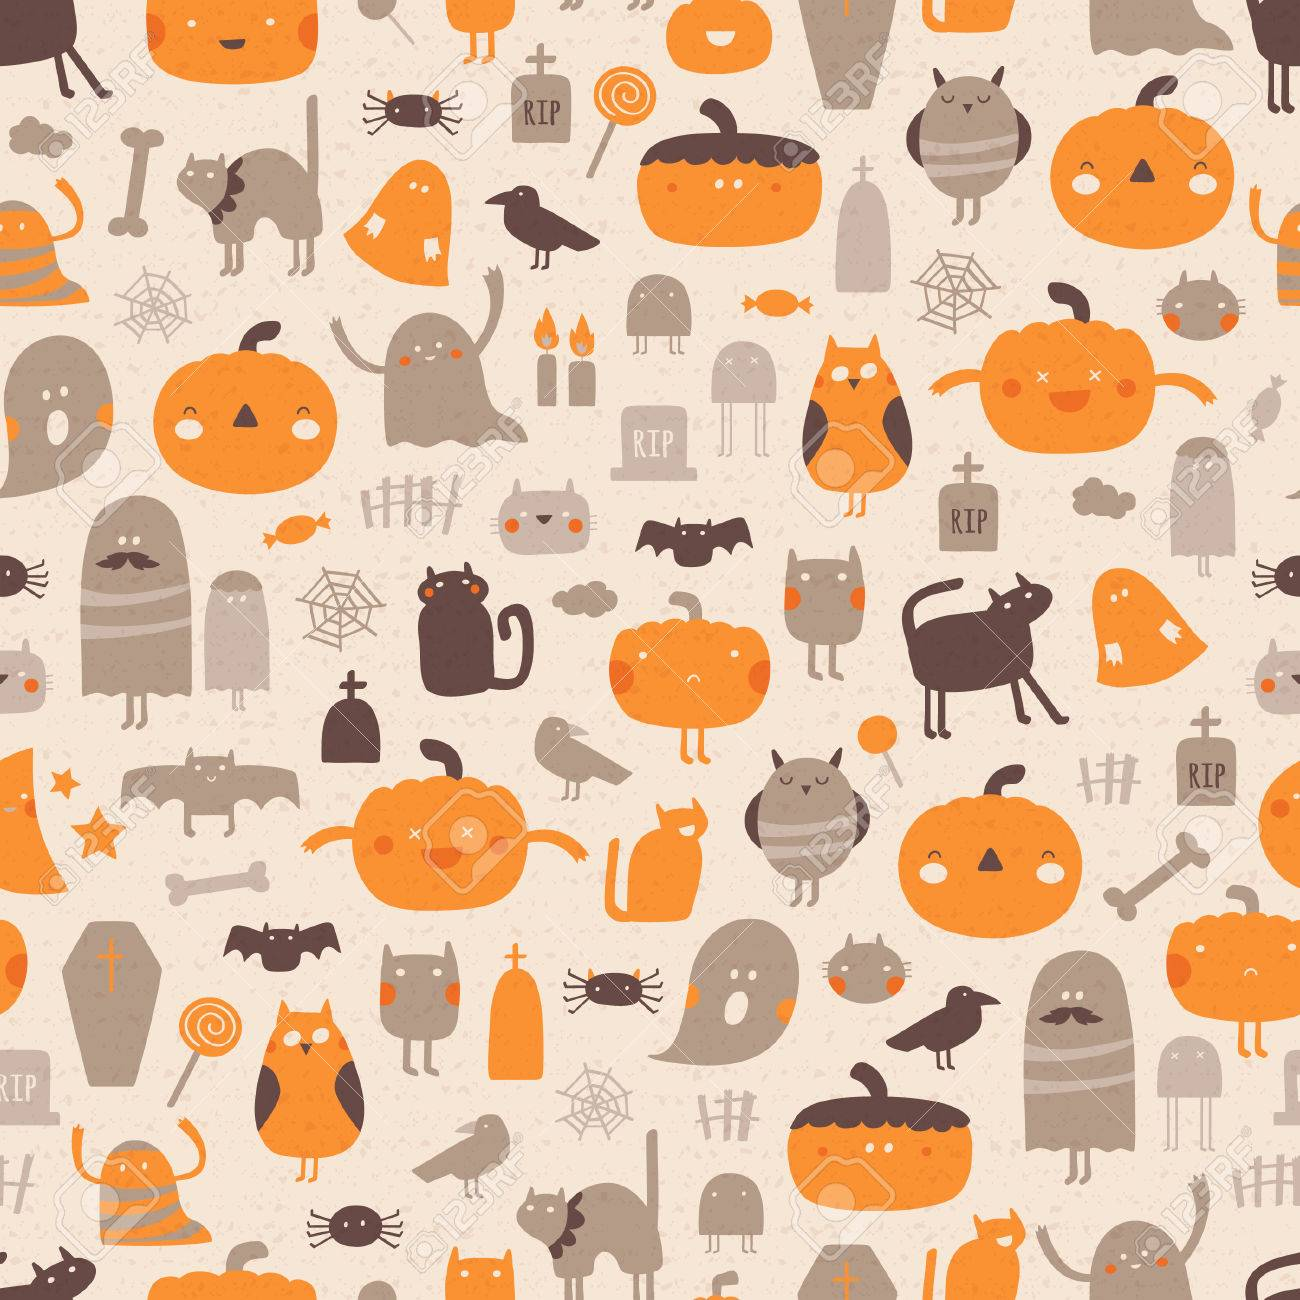 Vintage halloween background vector seamless pattern for vintage halloween background vector seamless pattern for halloween stock vector 64498667 biocorpaavc Choice Image